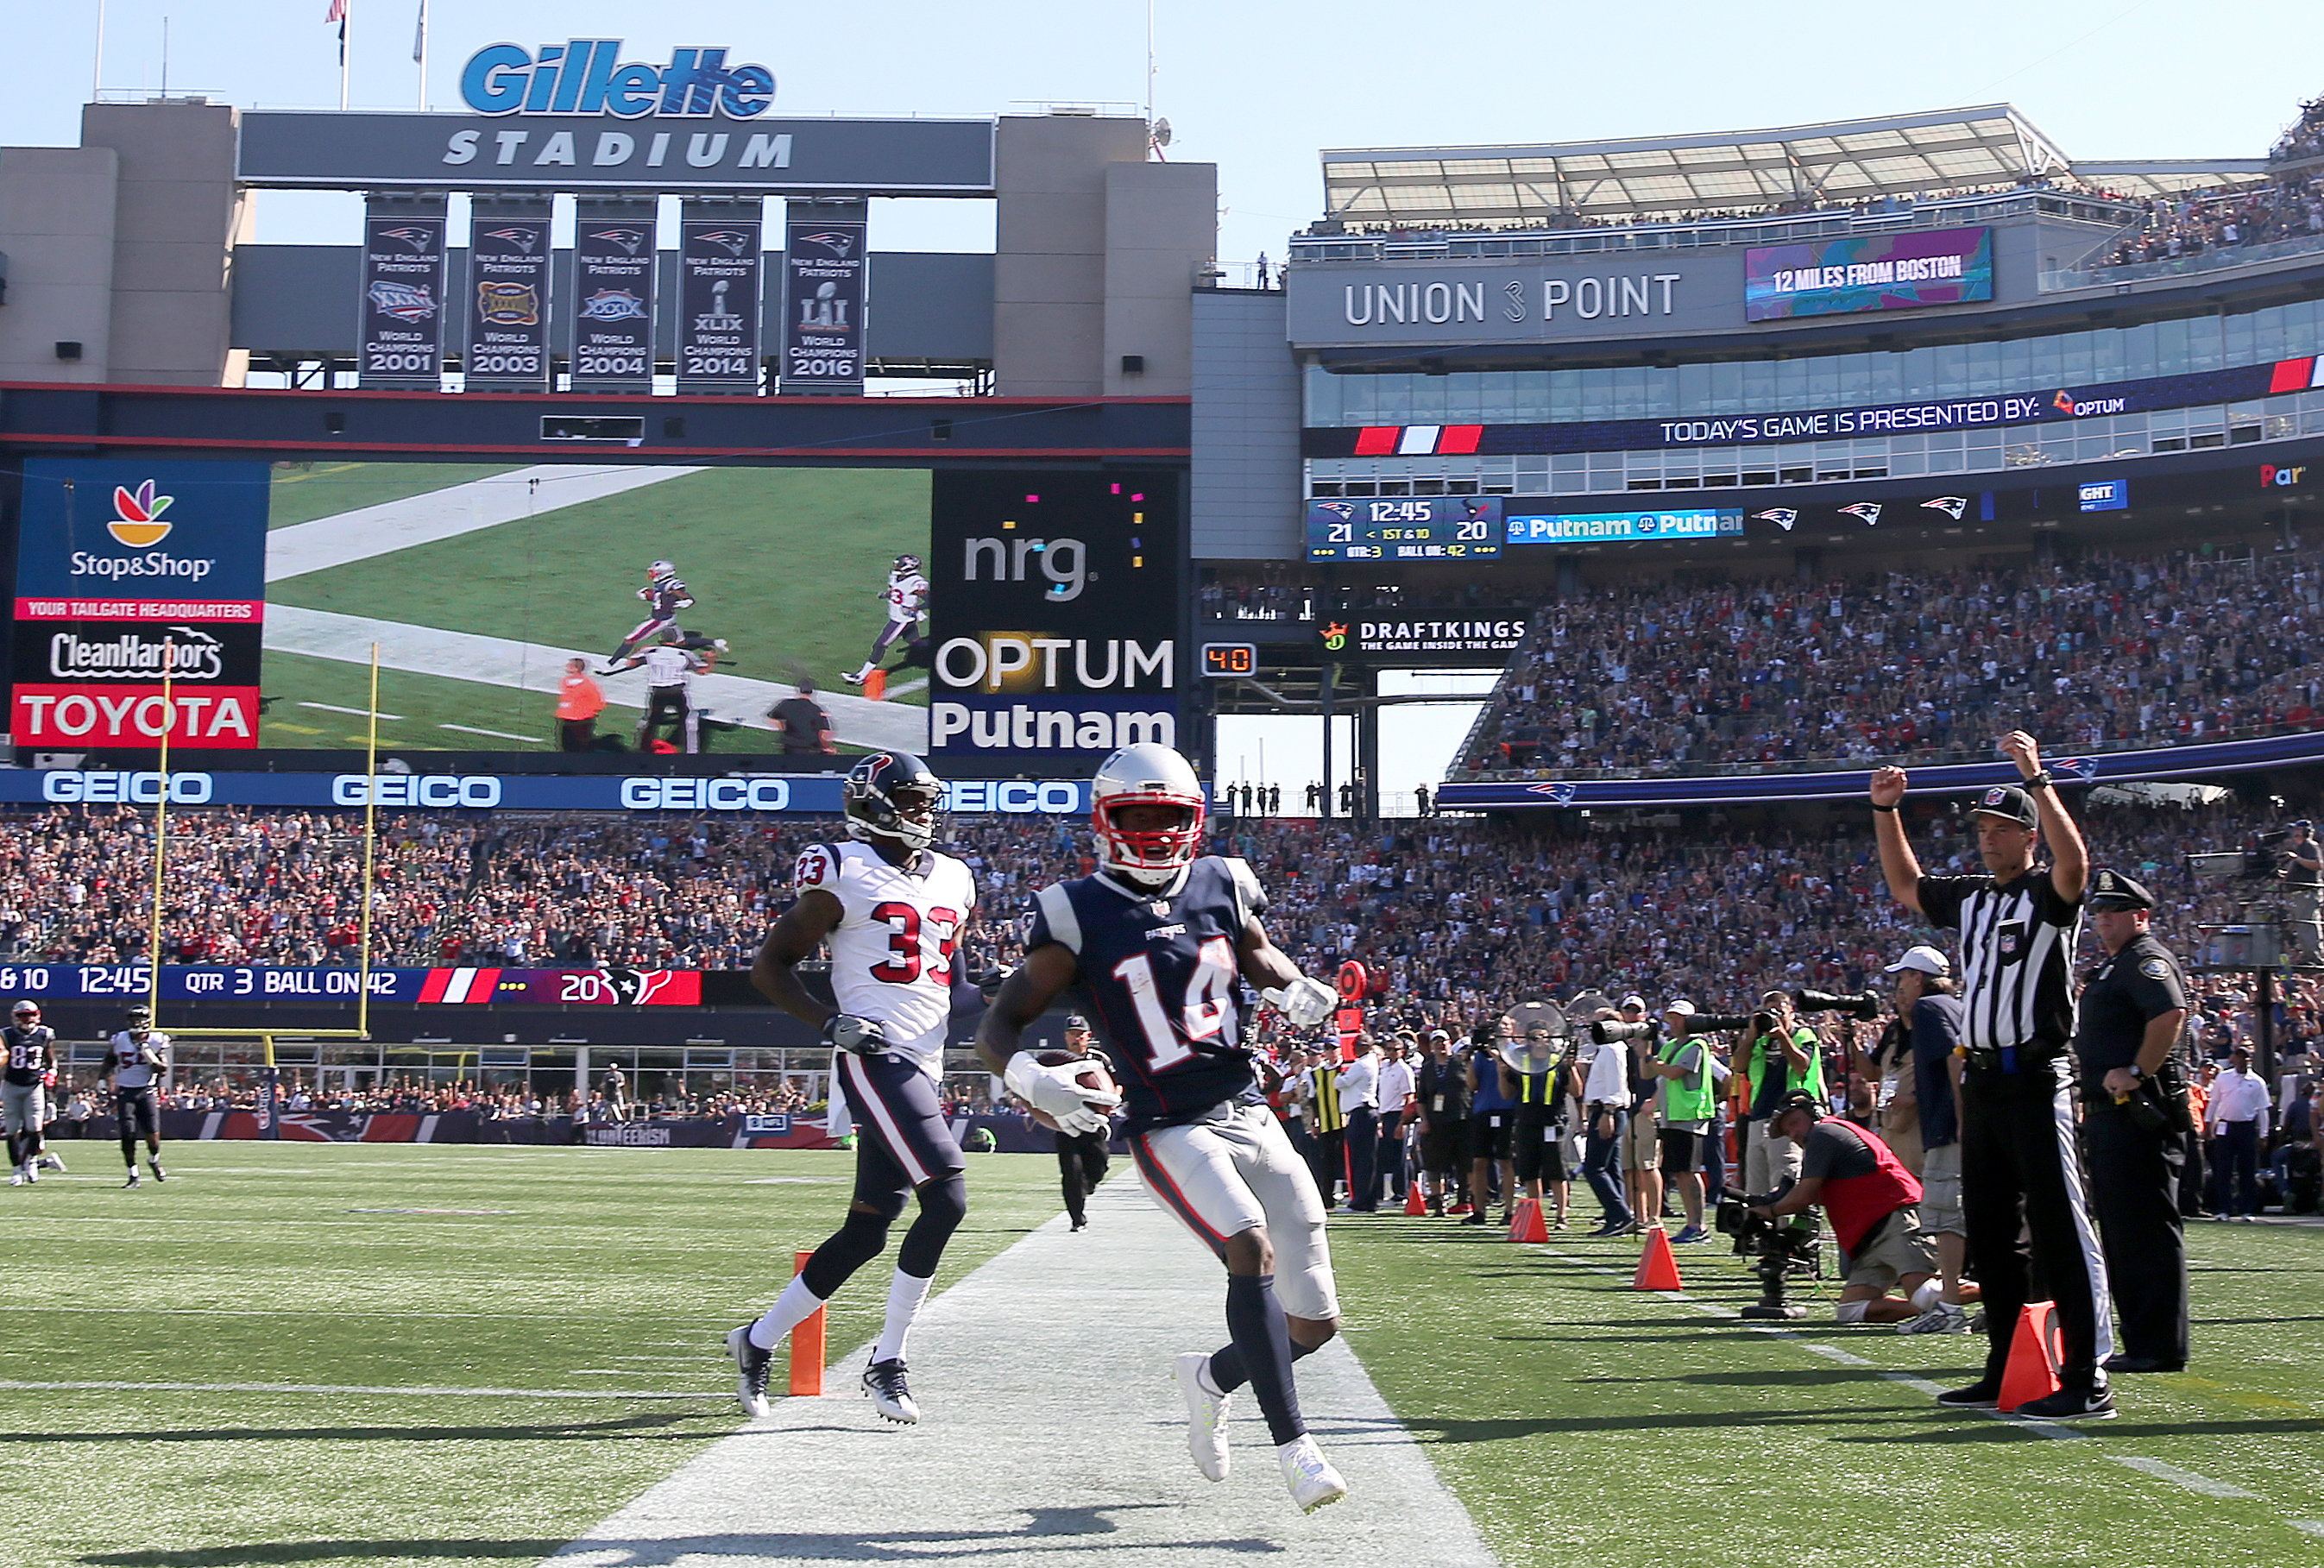 c3befc2d The day that Brandin Cooks became a true Patriot - The Boston Globe